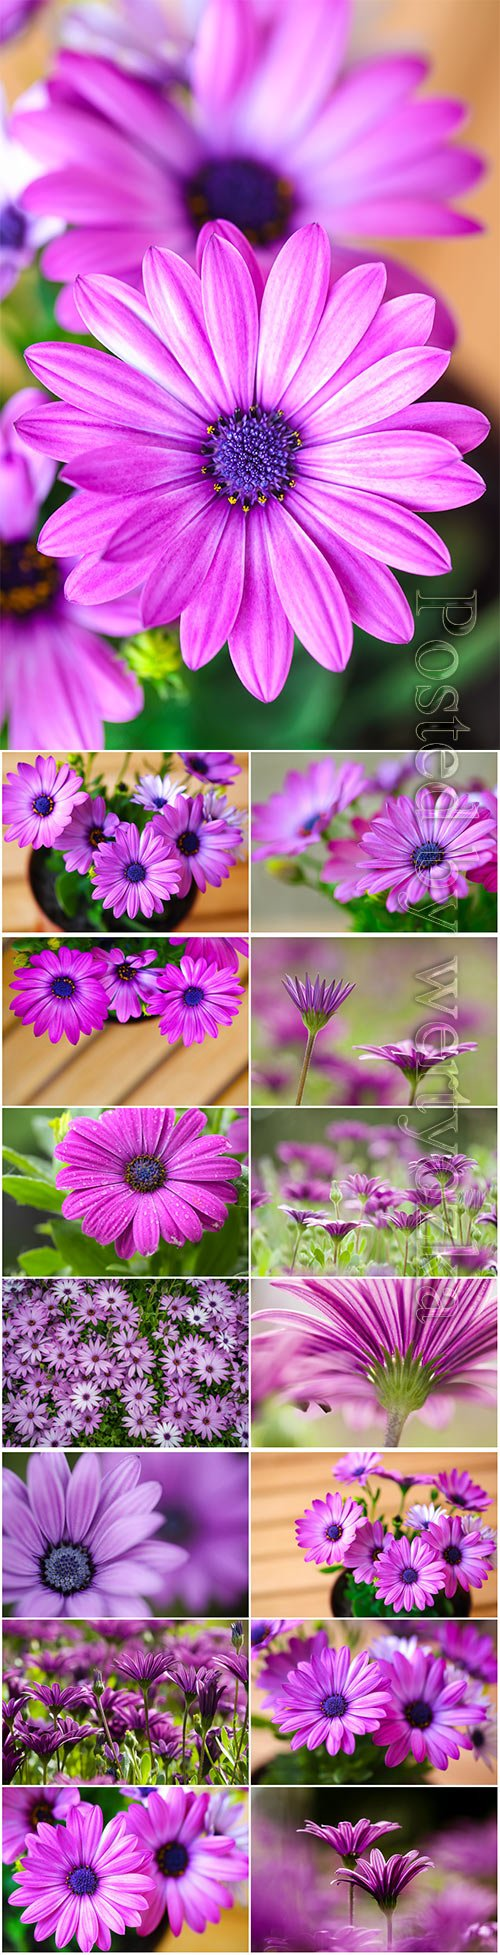 Lilac daisies beautiful stock photo